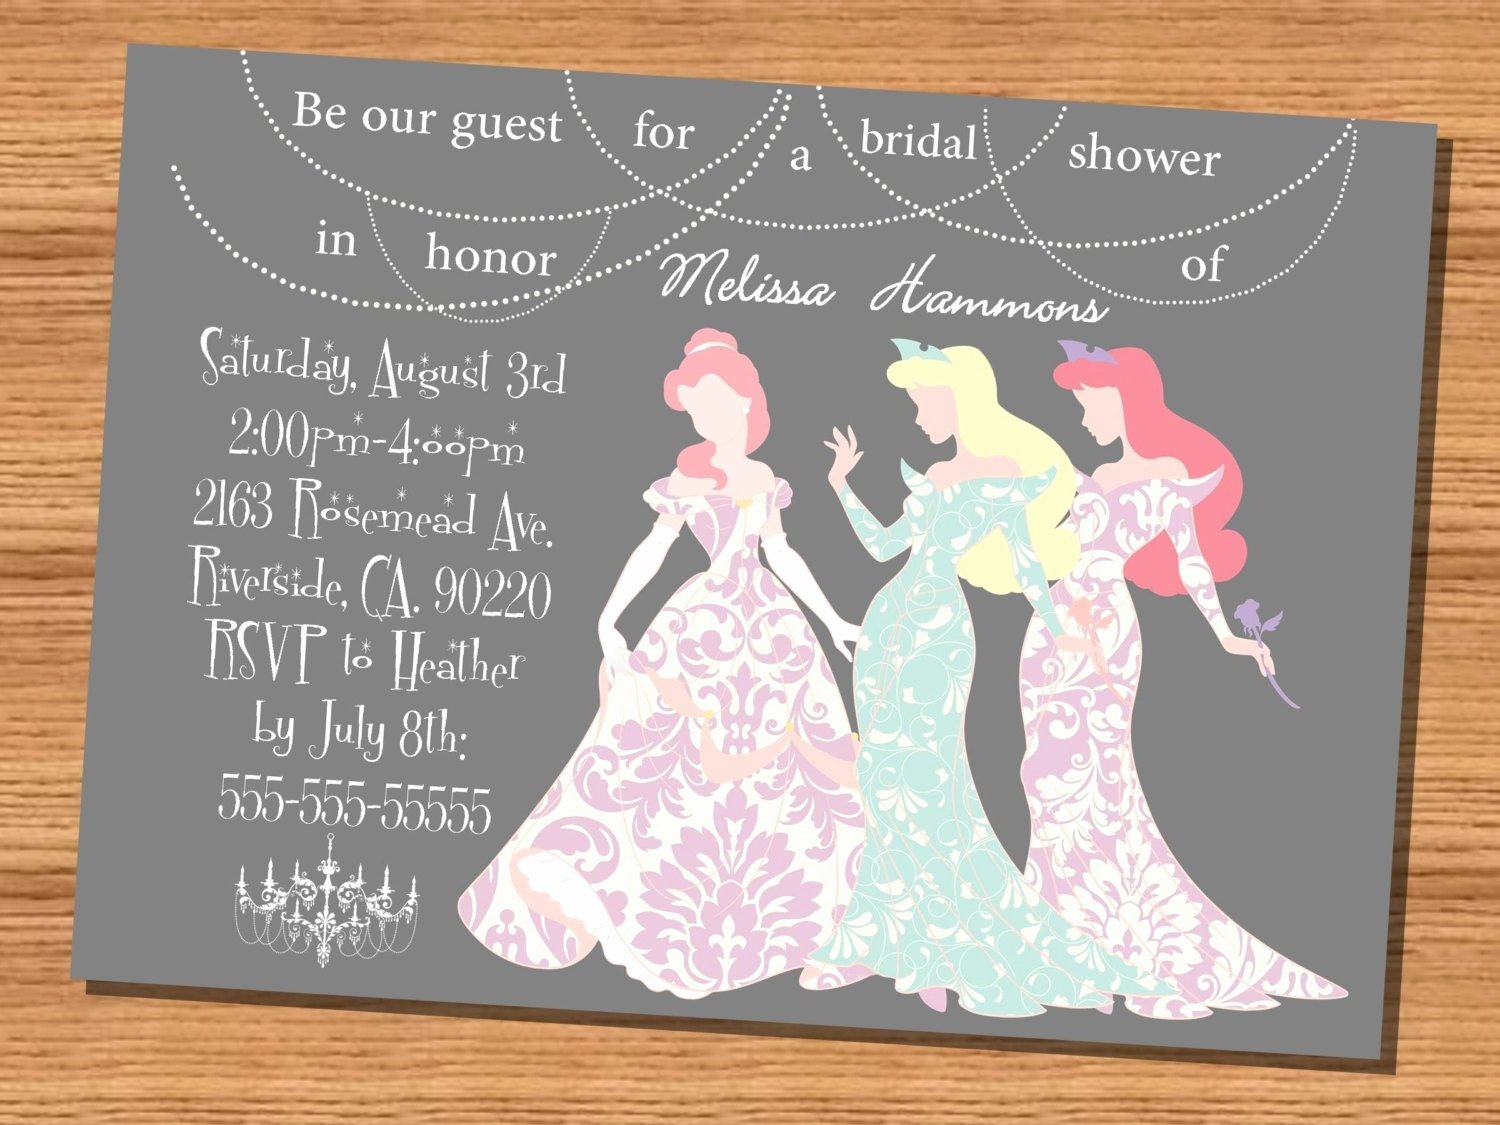 Disney Bridal Shower Invitations Unique Disney Bridal Shower Invitations Cobypic